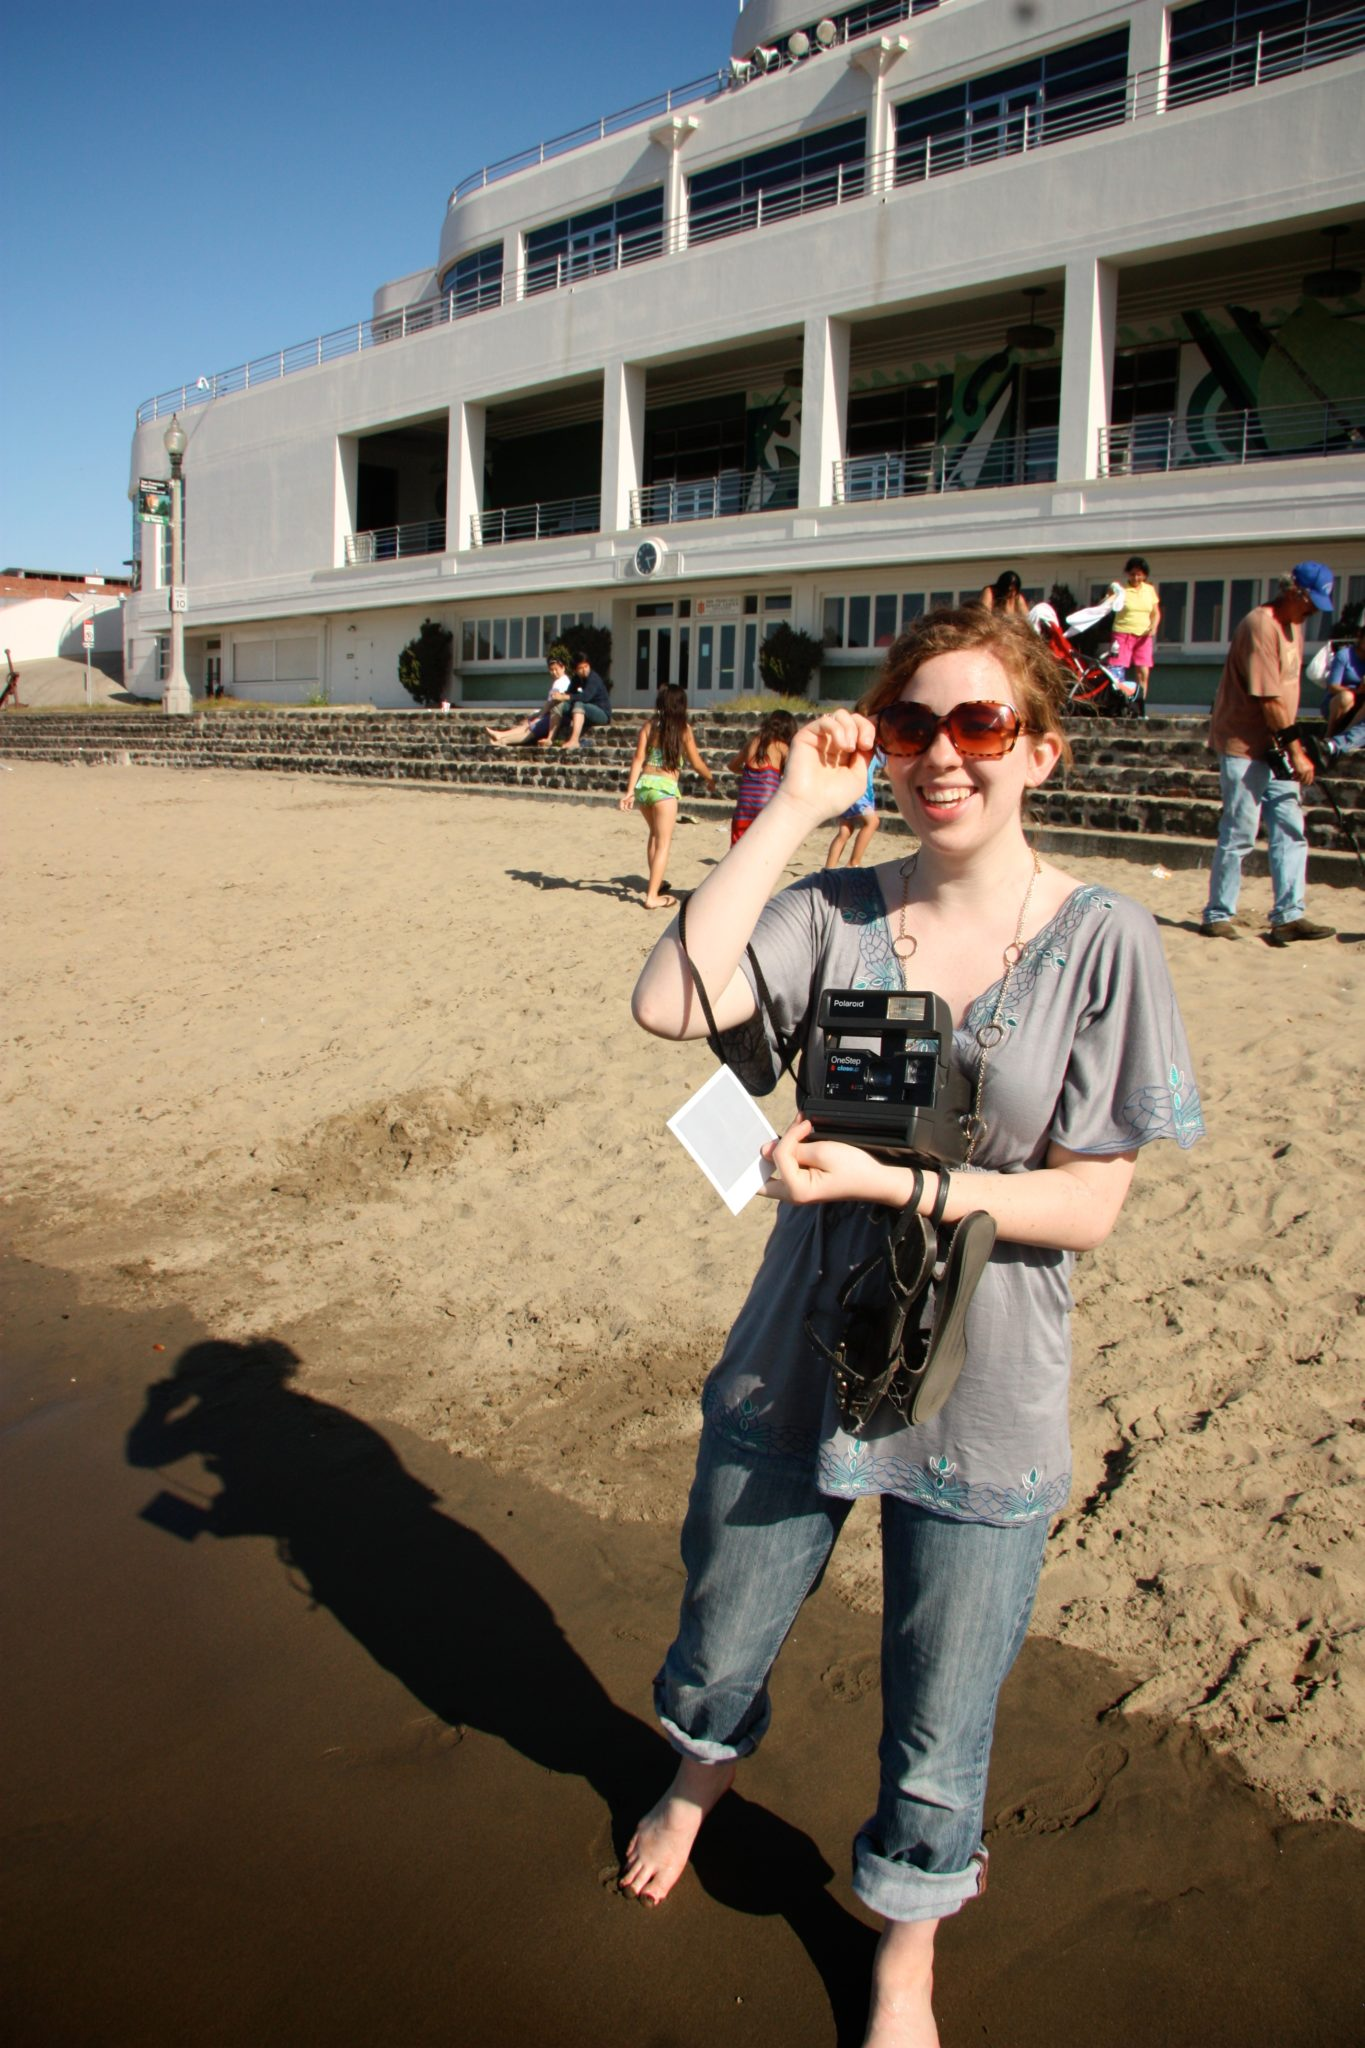 With Christina and her Poloroid Camera by the San Francisco bay